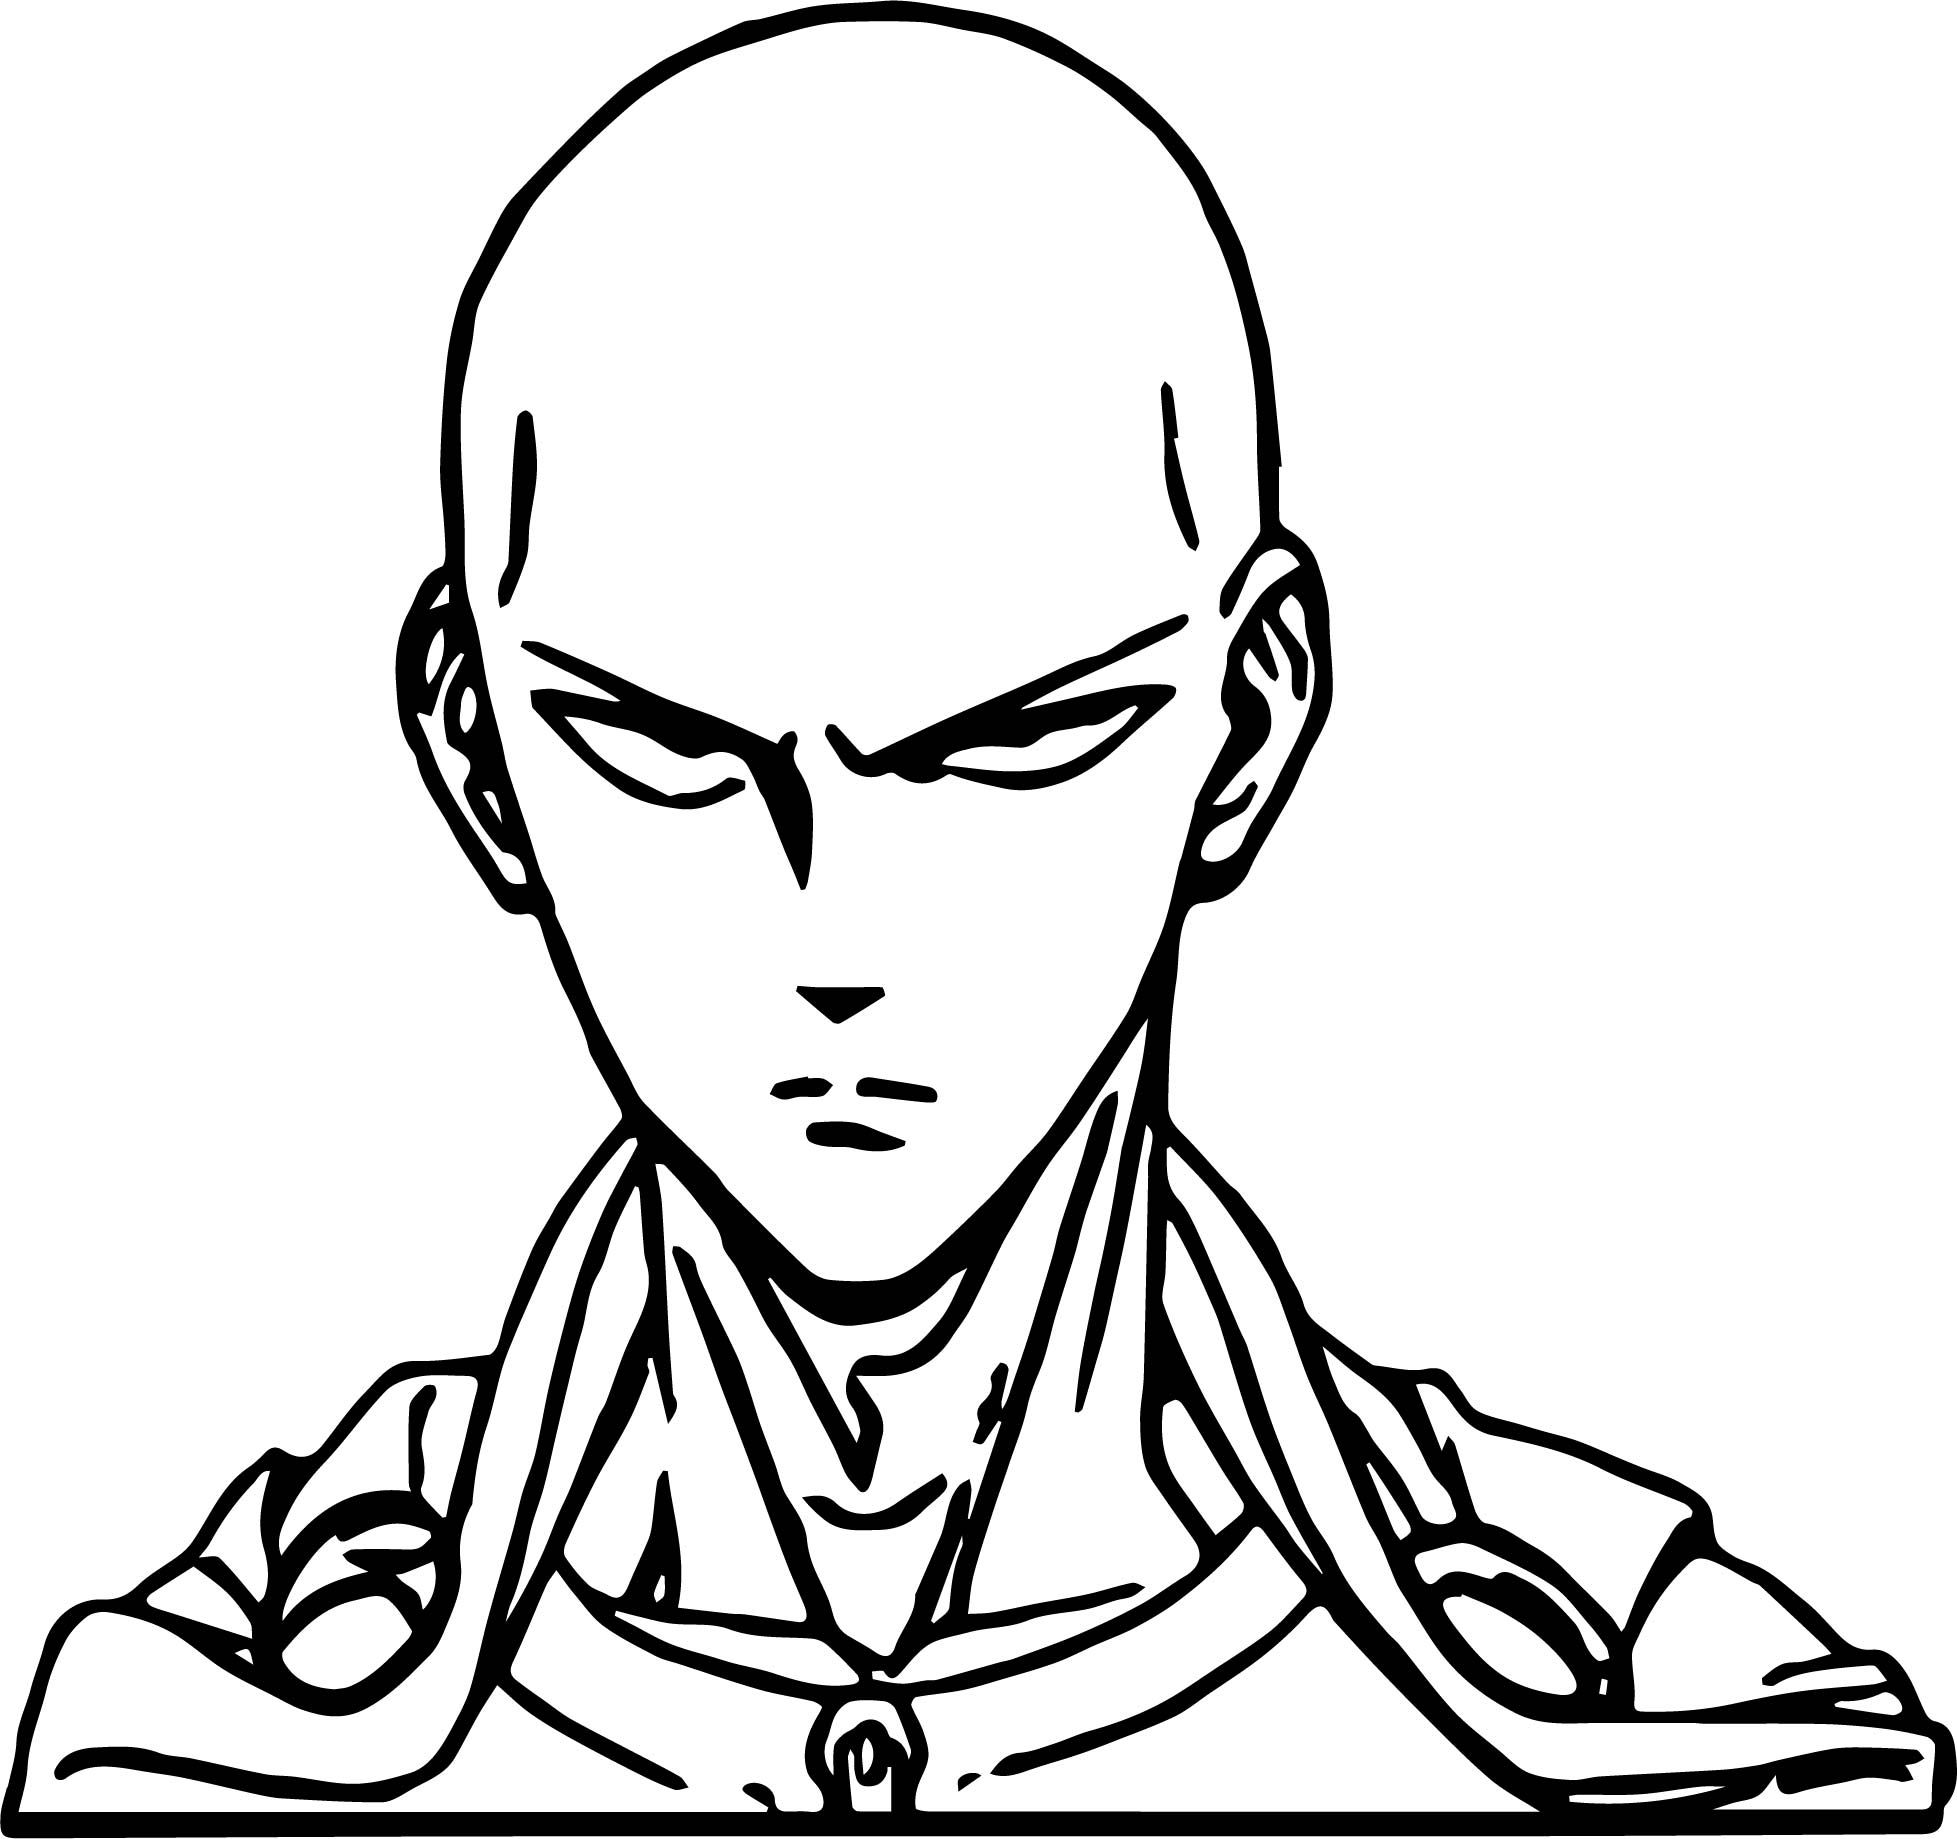 Cool One Punch Man Anime Character Design Saitama Coloring Page One Punch Man Anime Anime Character Design Character Design